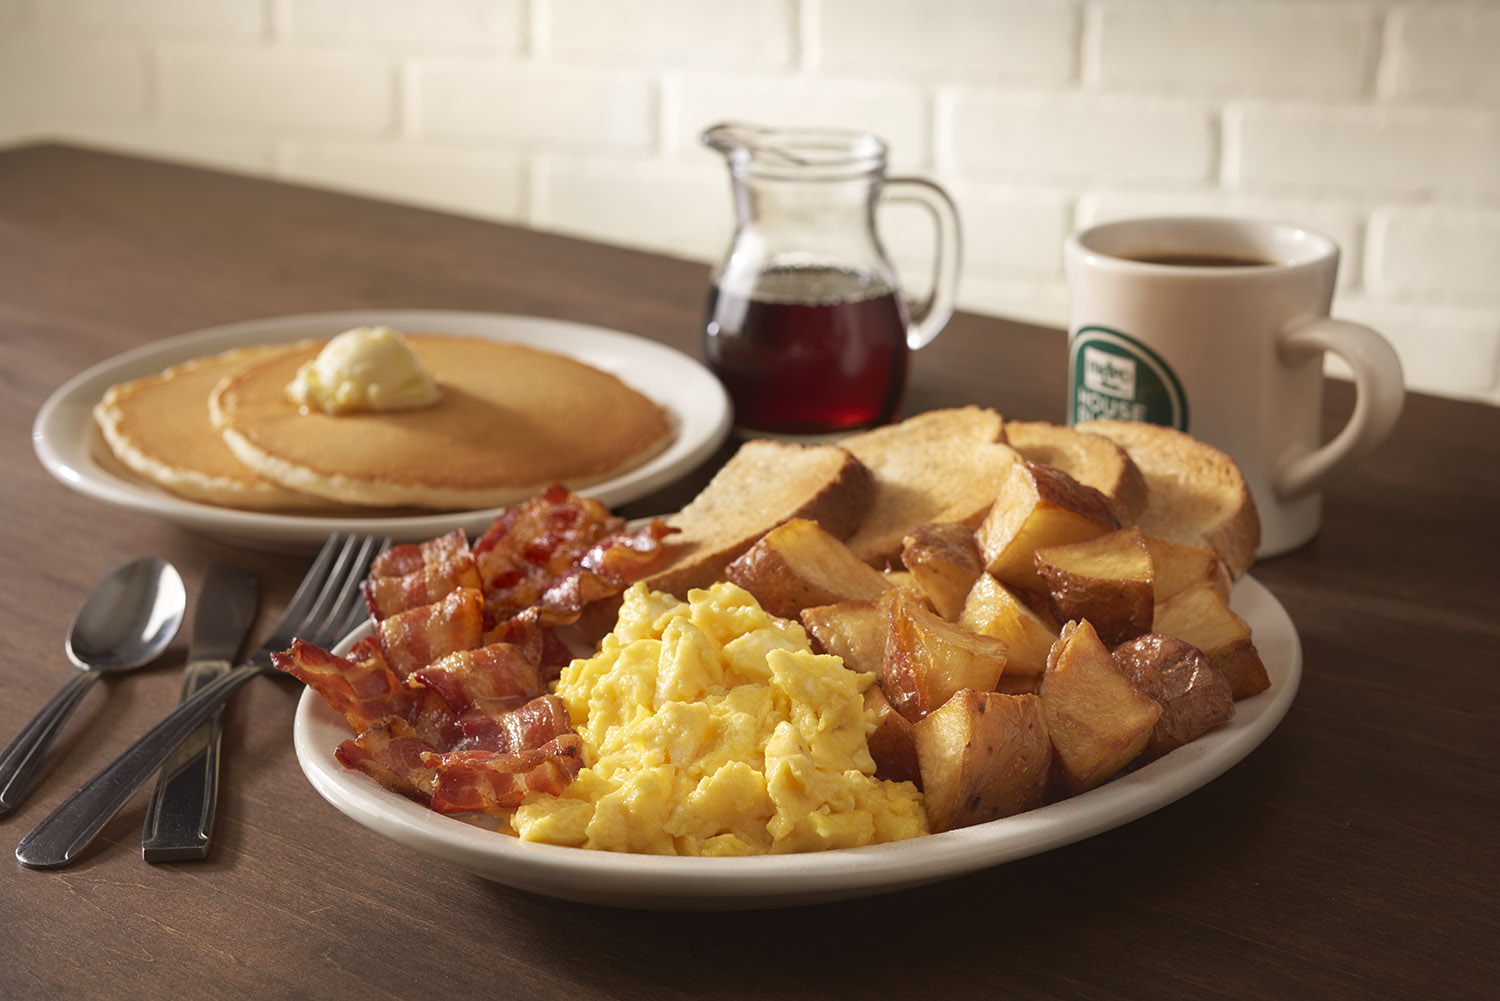 French toast sticks sausage patty hashbrowns clipart library Breakfast Menu - The Metro Diner library